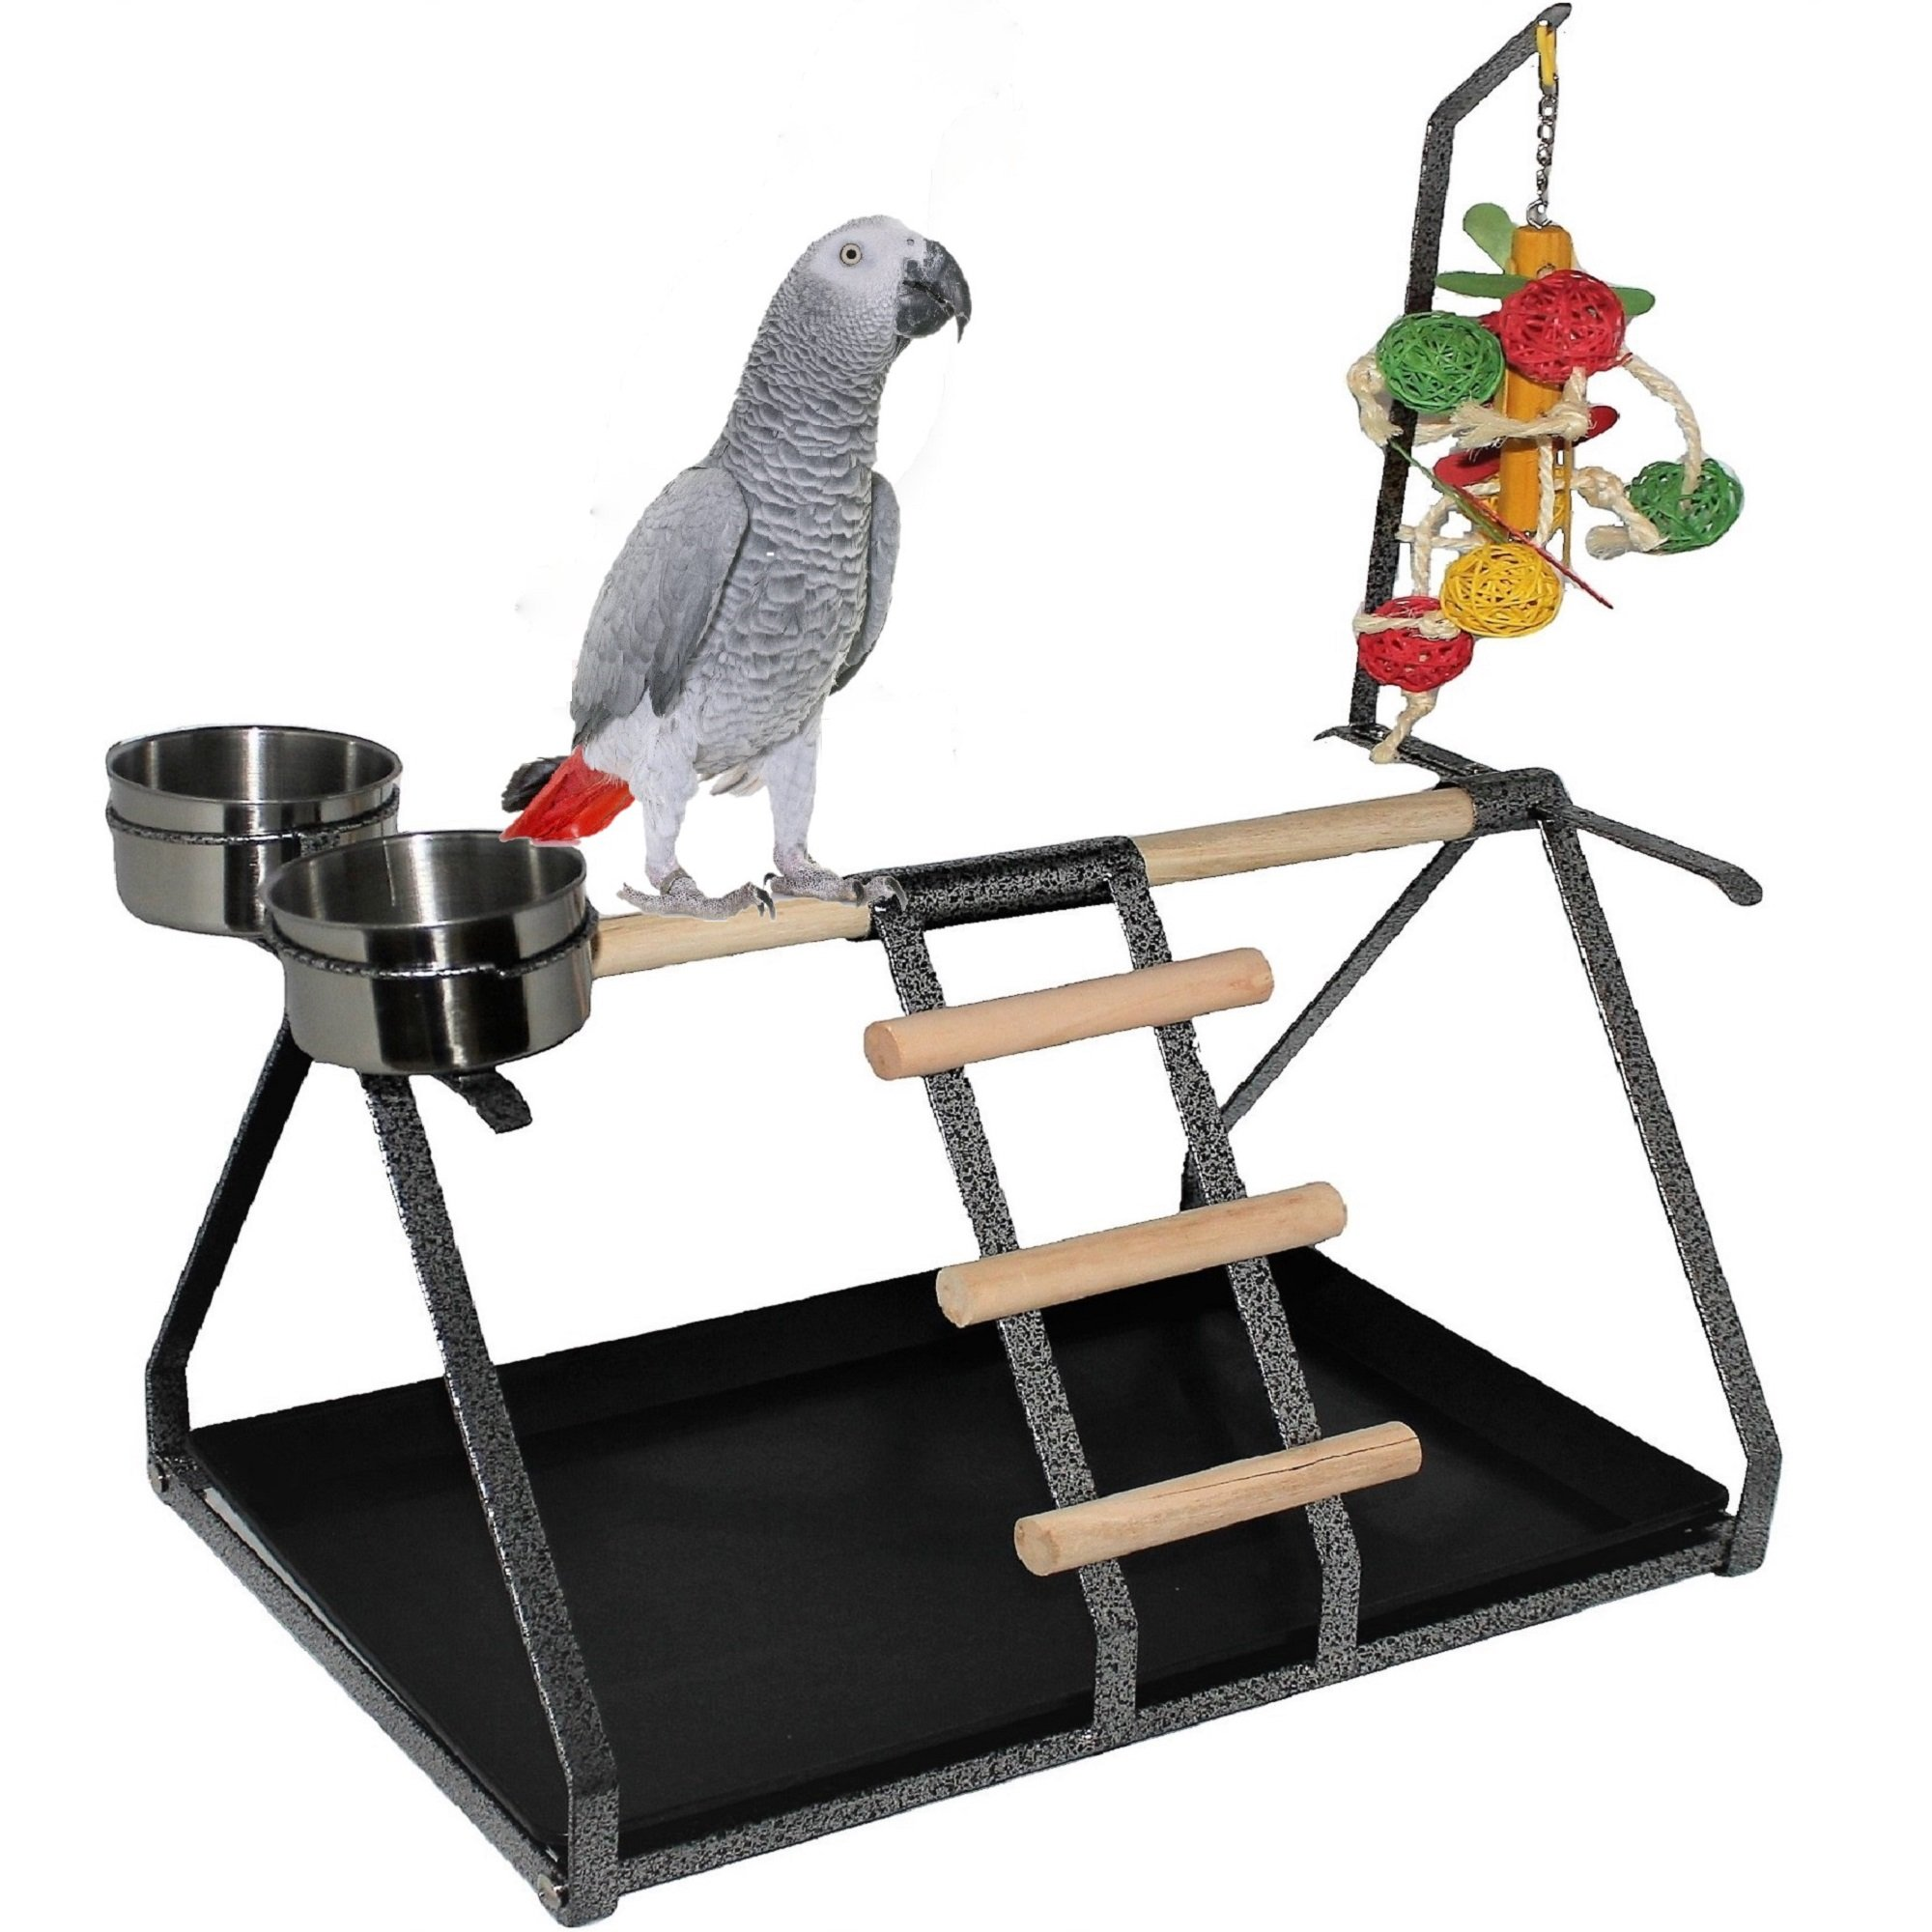 FDC Parrot Bird Perch Table Top Stand Metal Wood 2 Steel Cups Play for Medium and Large Breeds 17.5'' x 12.5'' x 11''